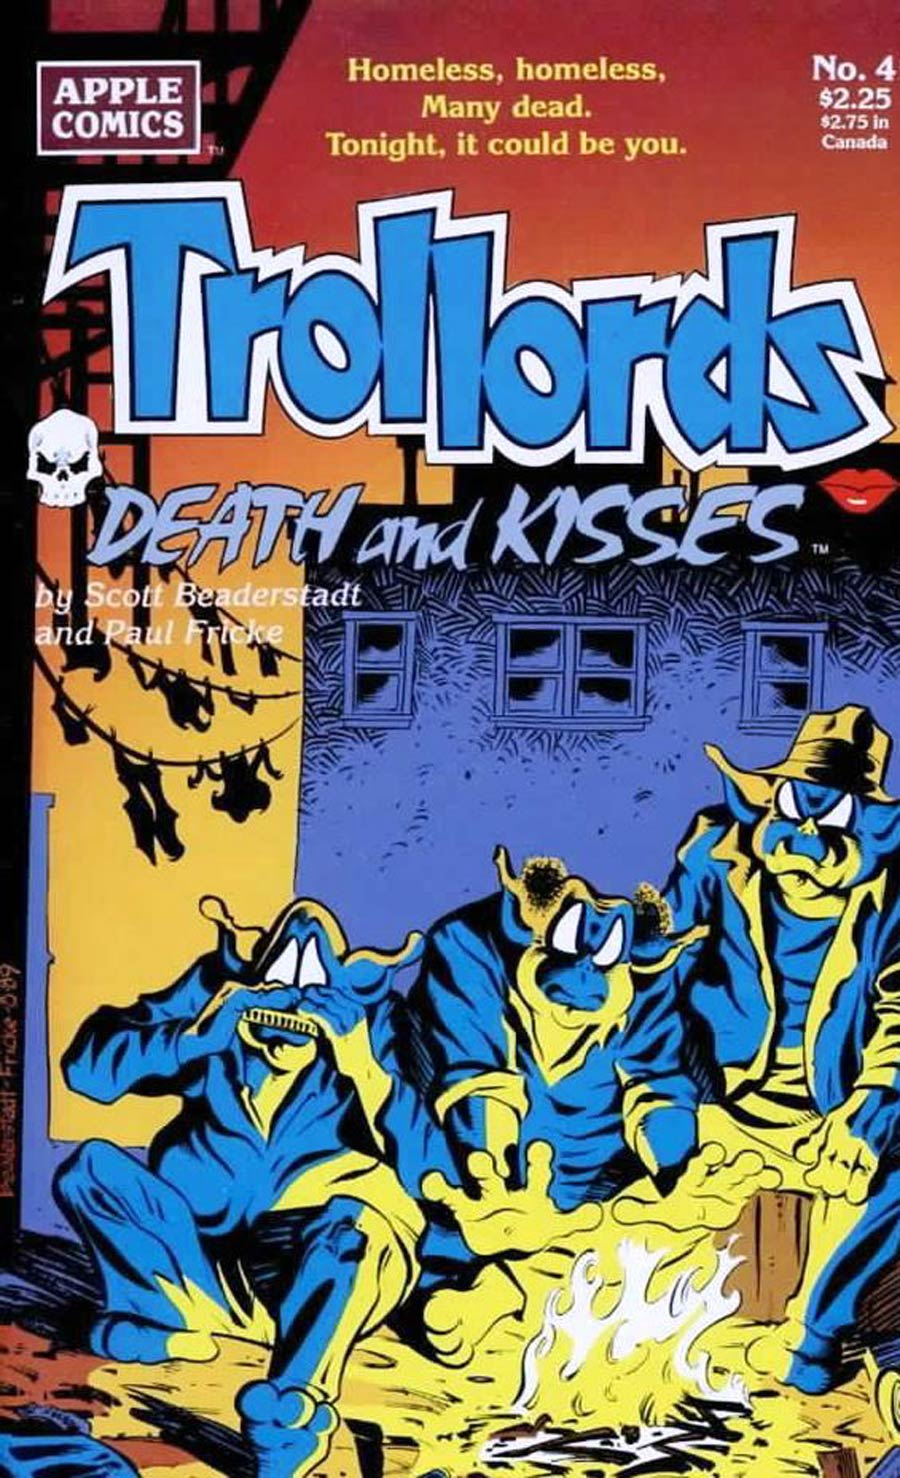 Trollords Death and Kisses #4